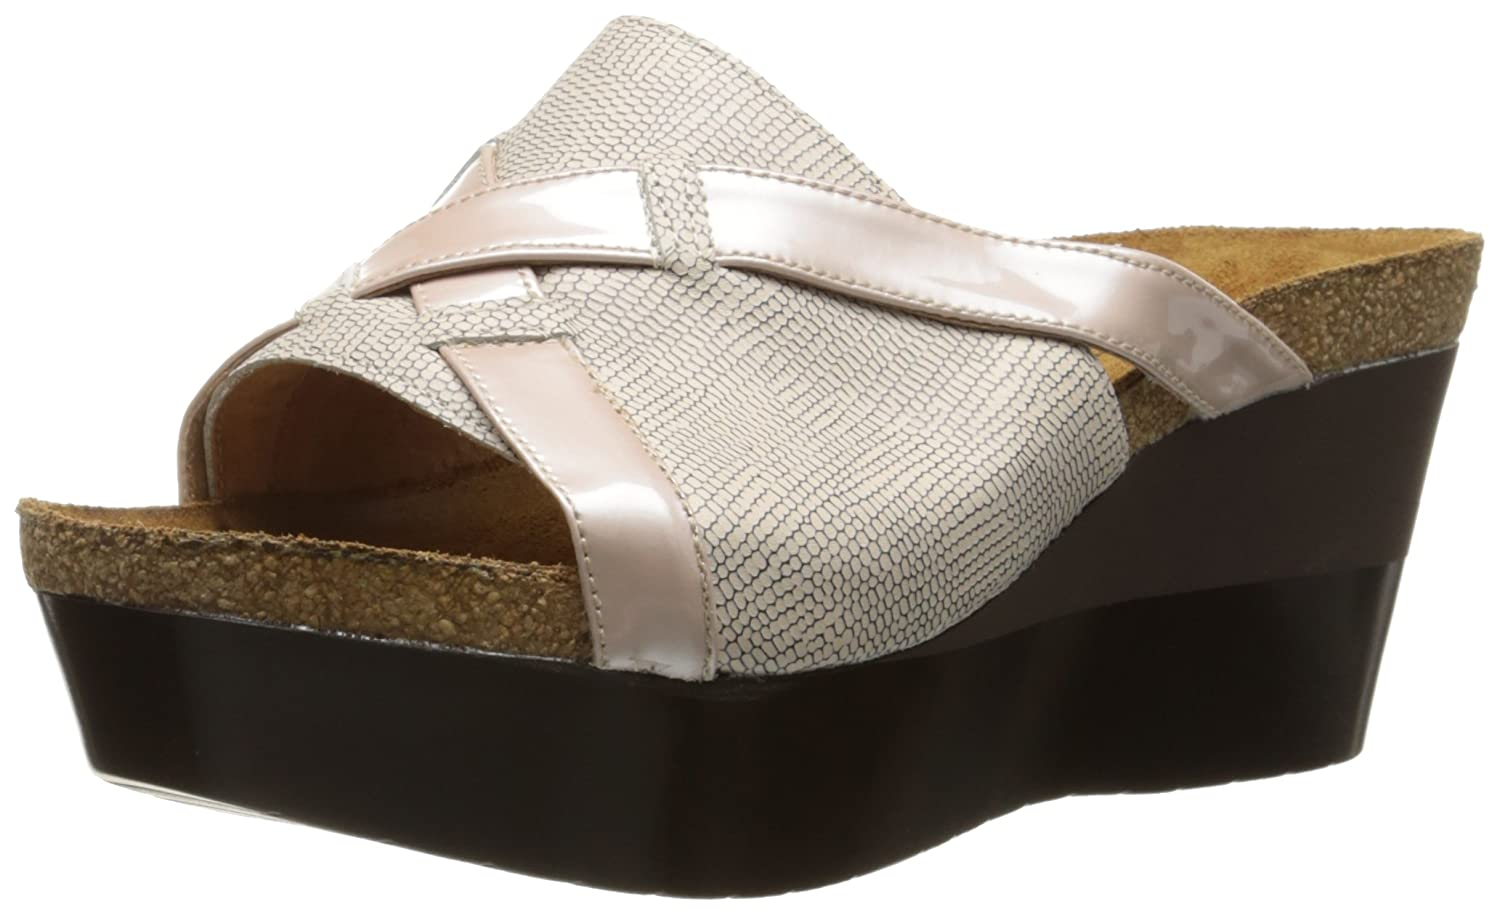 NAOT Women's Eve Wedge Sandal B00DS70ZDY 42 M EU|Colonial Beige/Satin Beige Patent